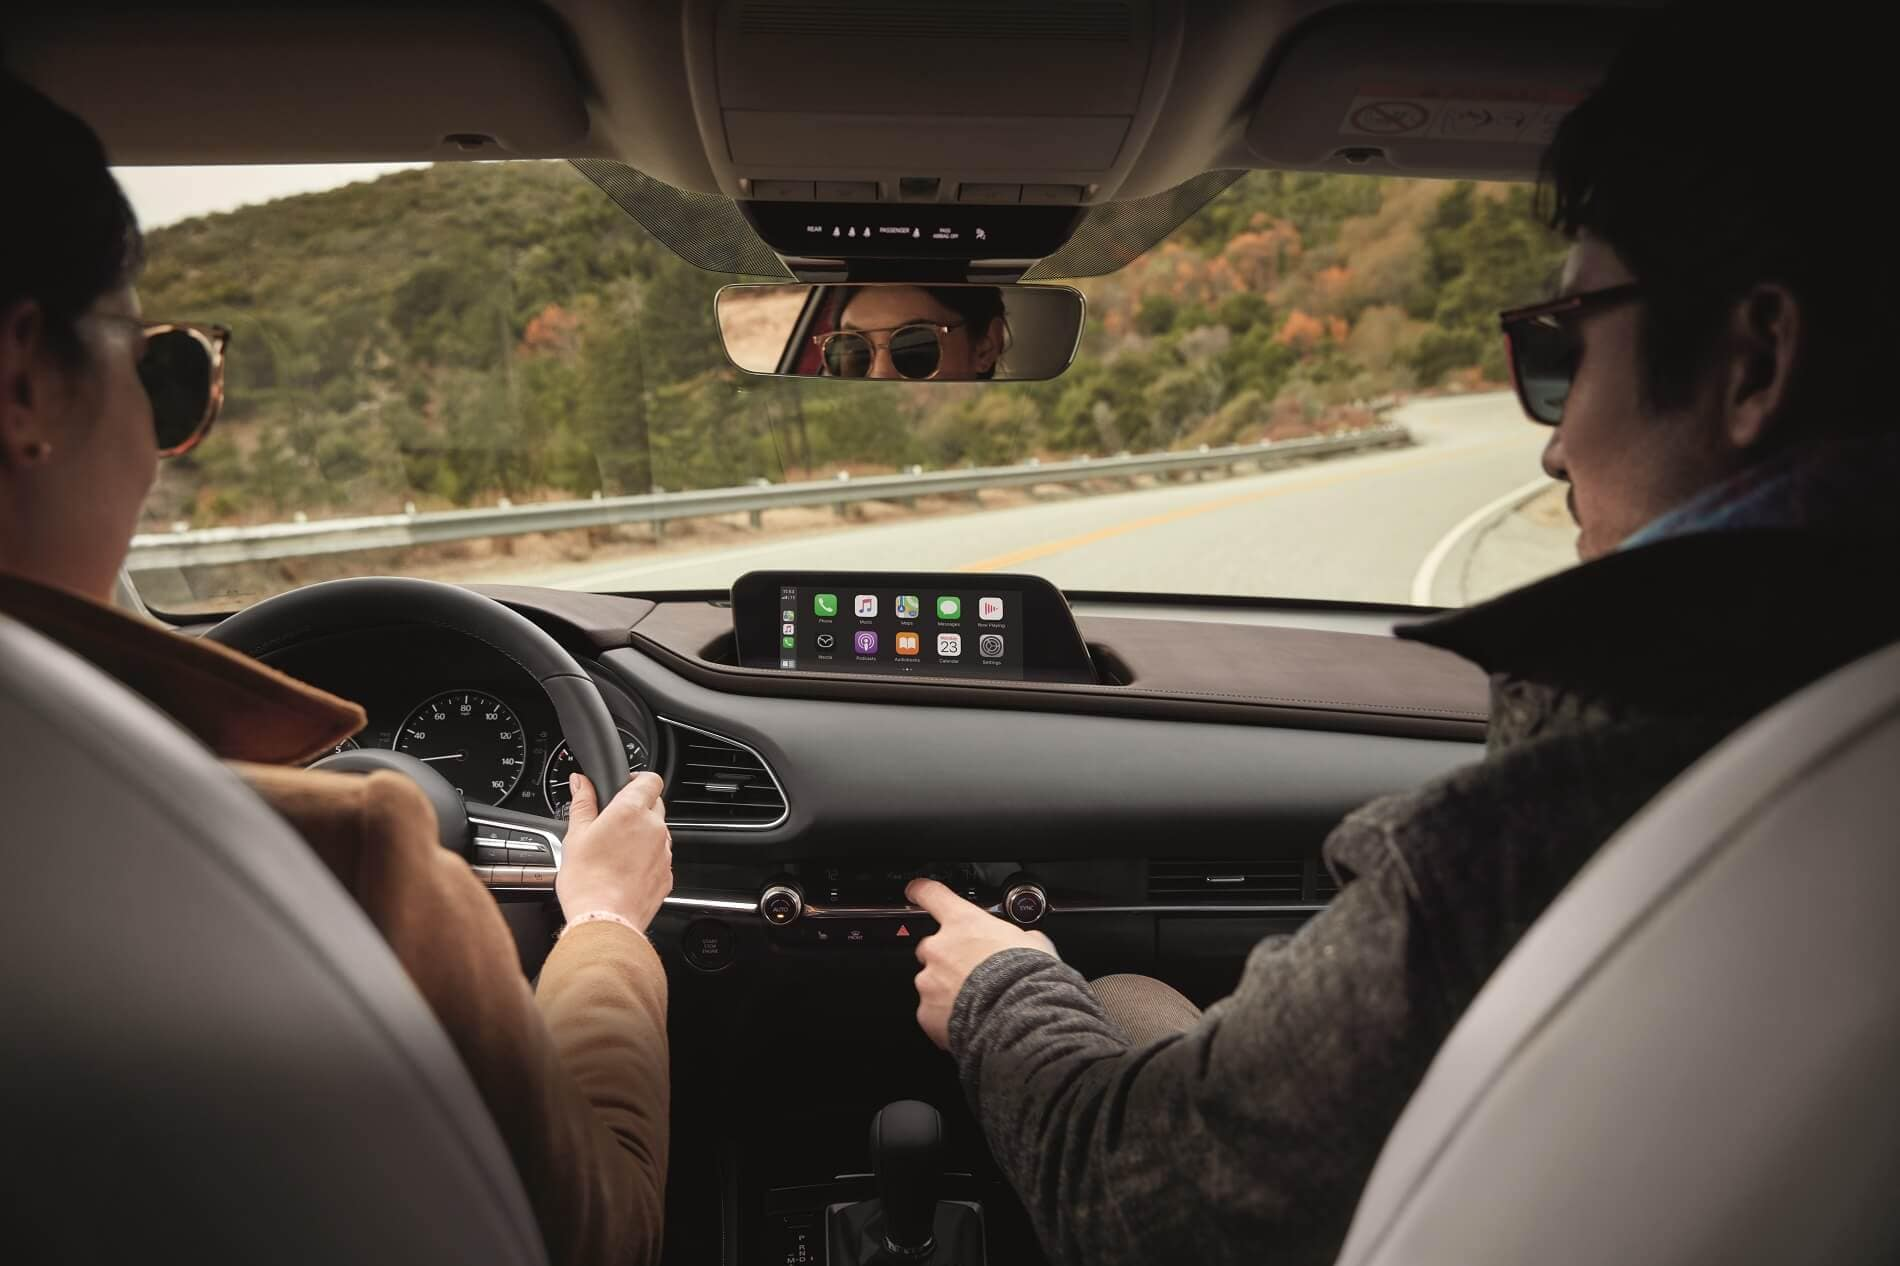 2020 Mazda CX-30 Interior With Apple CarPlay™ integration